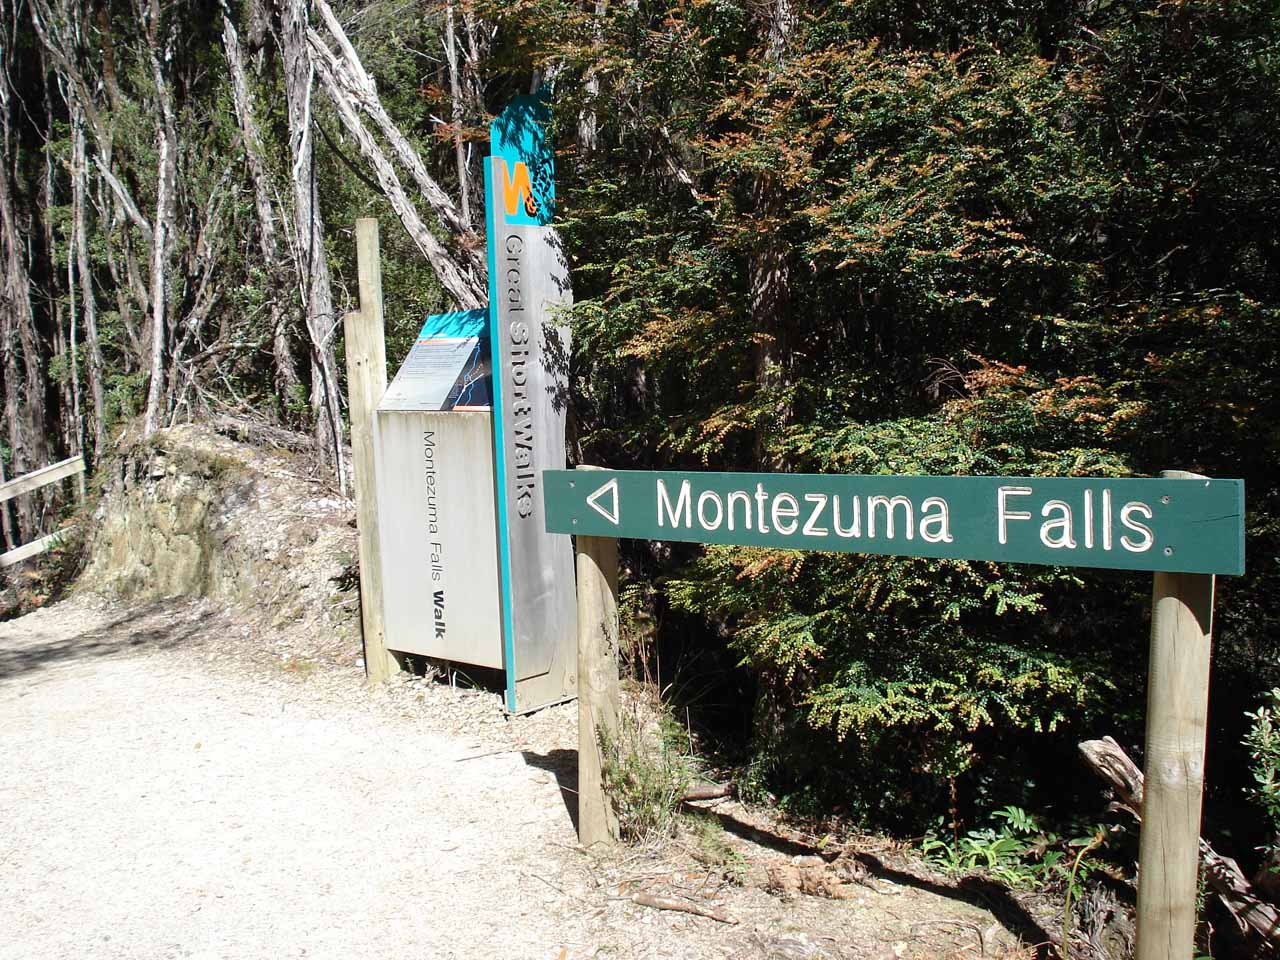 Continuing to follow the signs to embark on the Montezuma Falls hike